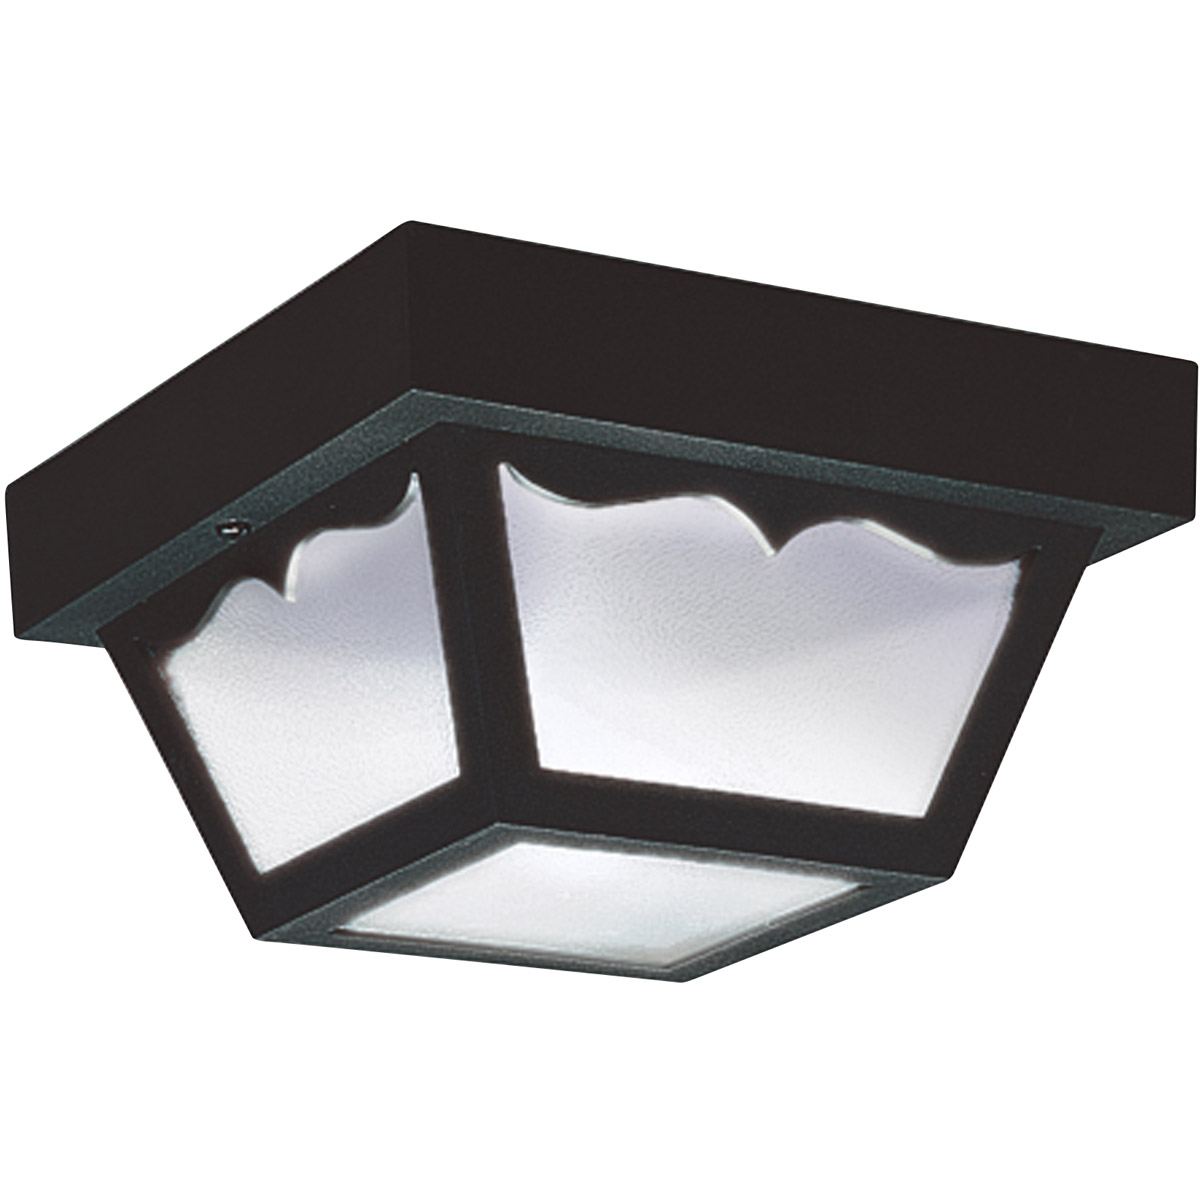 Sea Gull Lighting Signature 1 Light Outdoor Ceiling Fixture in Clear 7567-32 photo